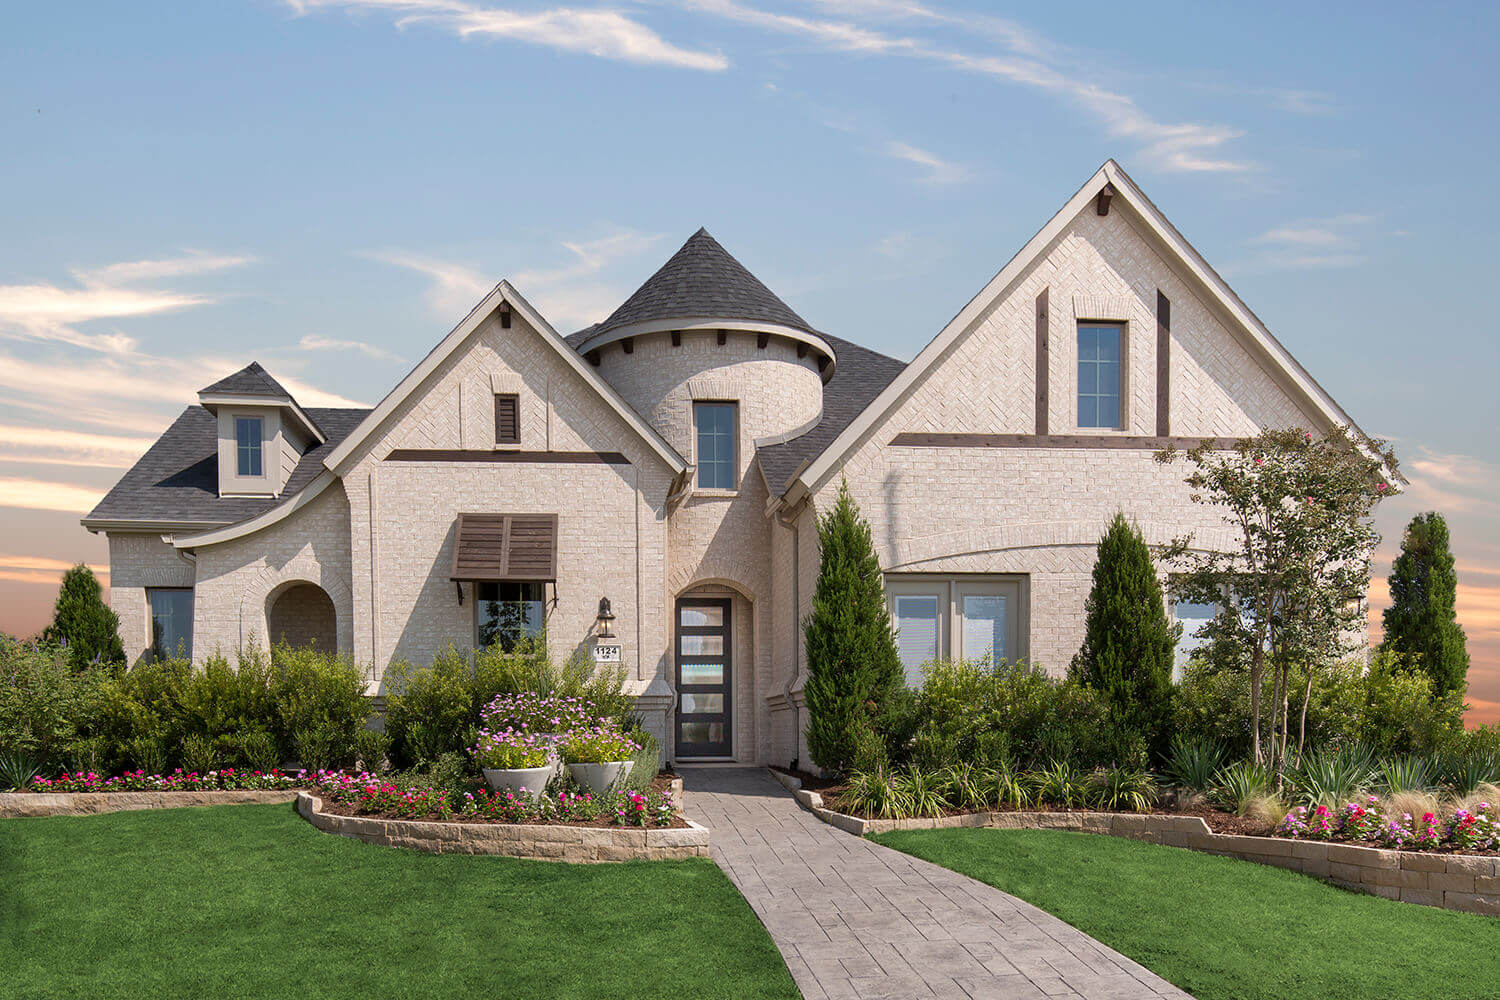 Plantation homes new homes for sale in dallas fort worth for Modern houses for sale in dallas